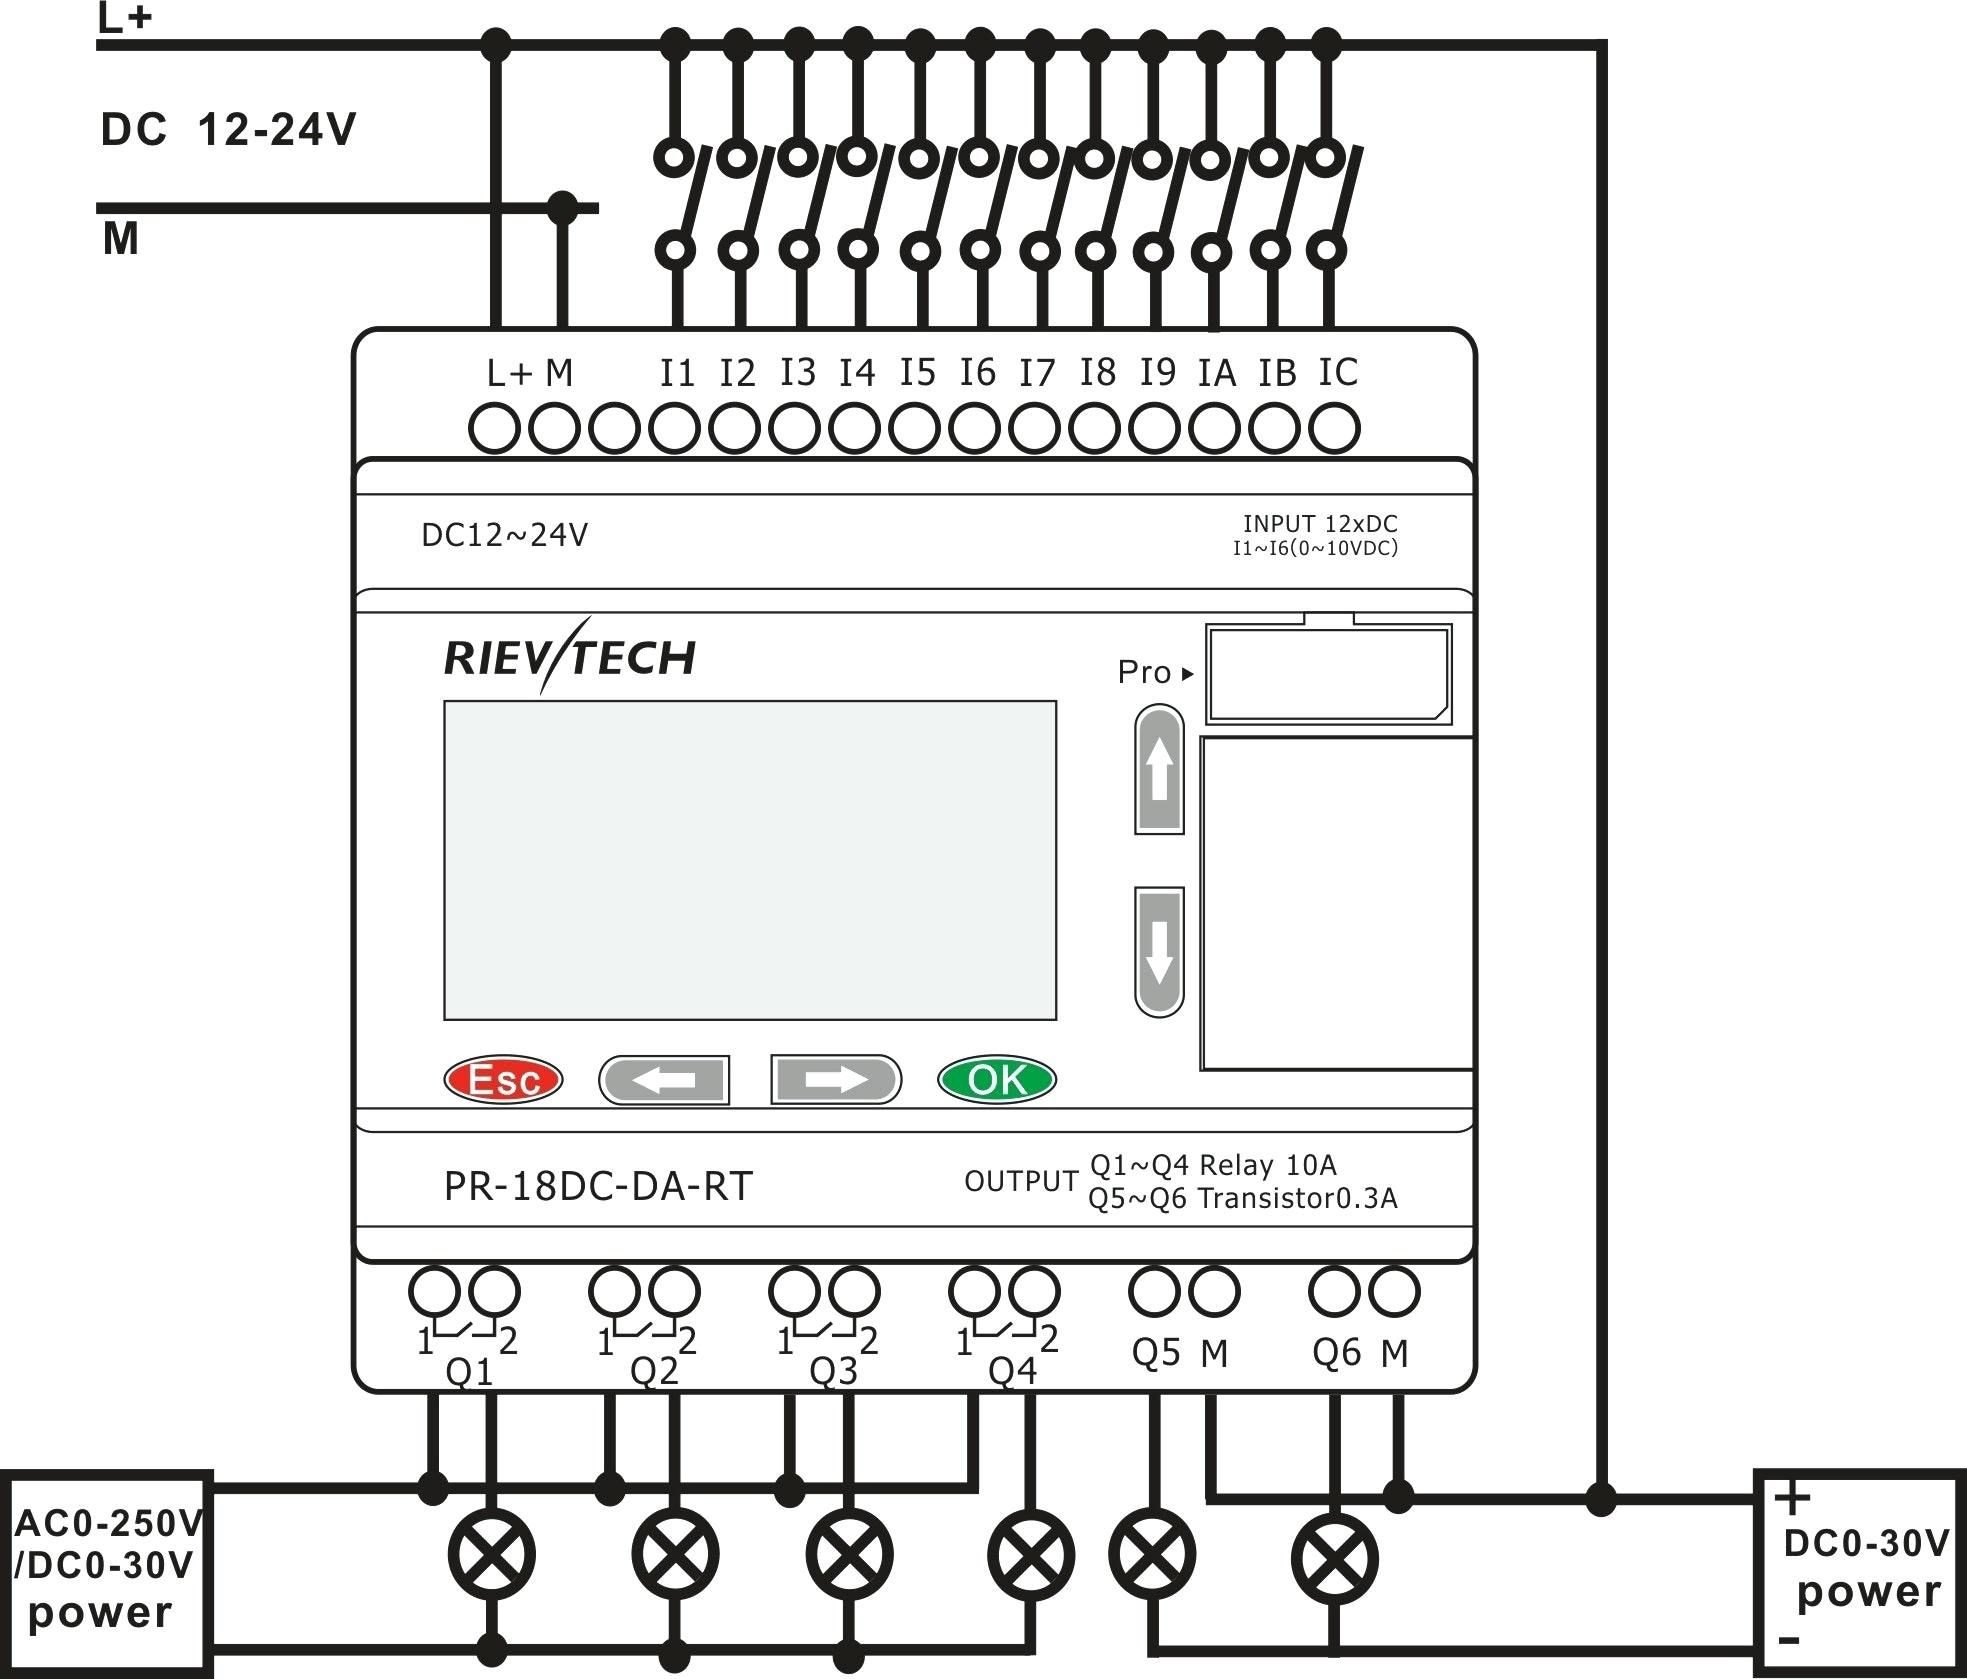 7 Complex Plc Panel Wiring Diagram Samples Electrical Circuit Diagram Diagram Electrical Panel Wiring